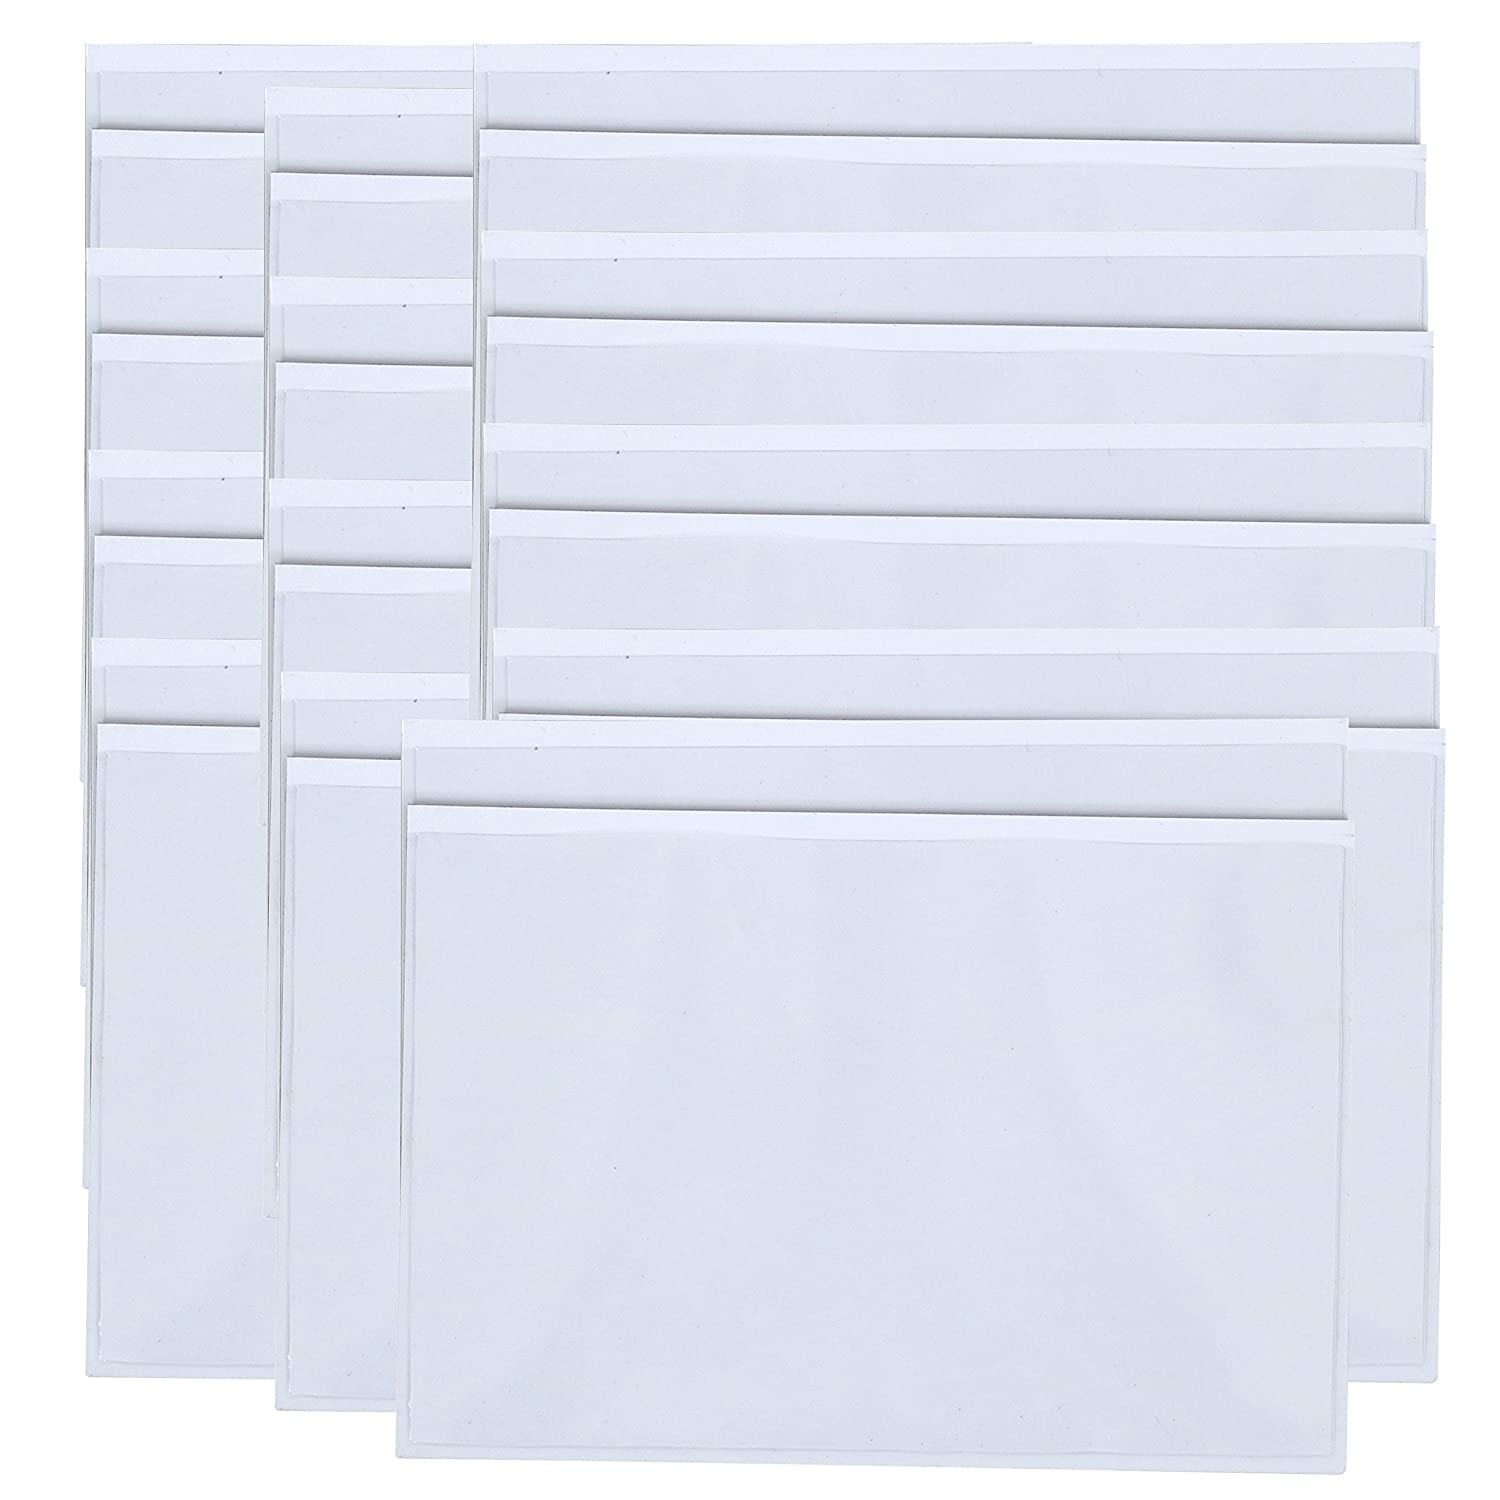 AfterThoughts 4 x 6 Magnetic Photo Sleeves - 26 Pack Regent